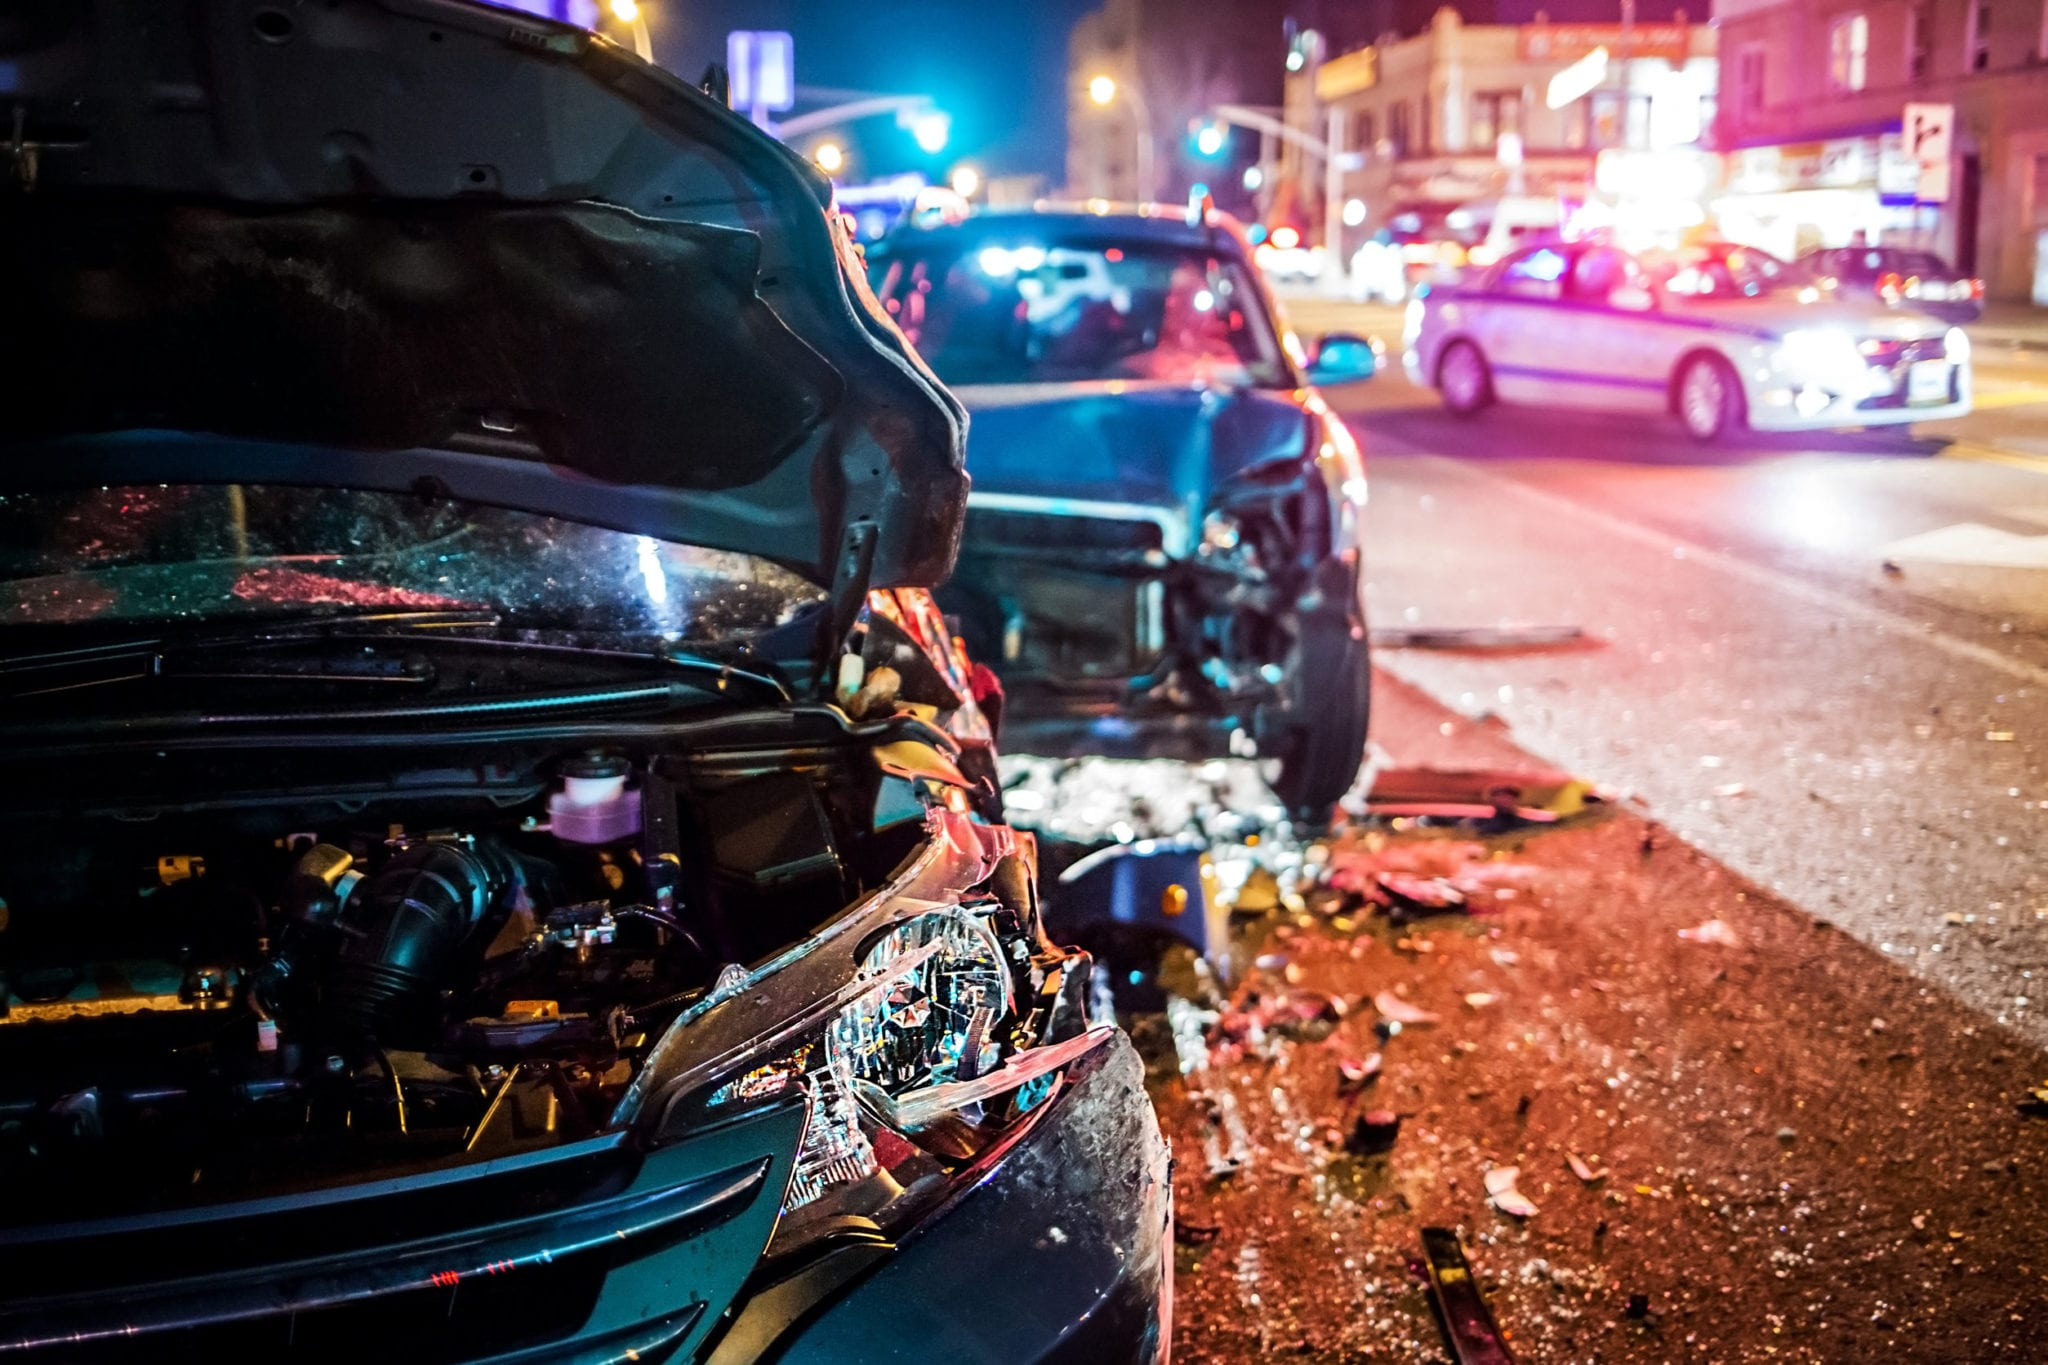 Hit by a TX Drunk Driver Over New Year's? The Clock's Already Ticking